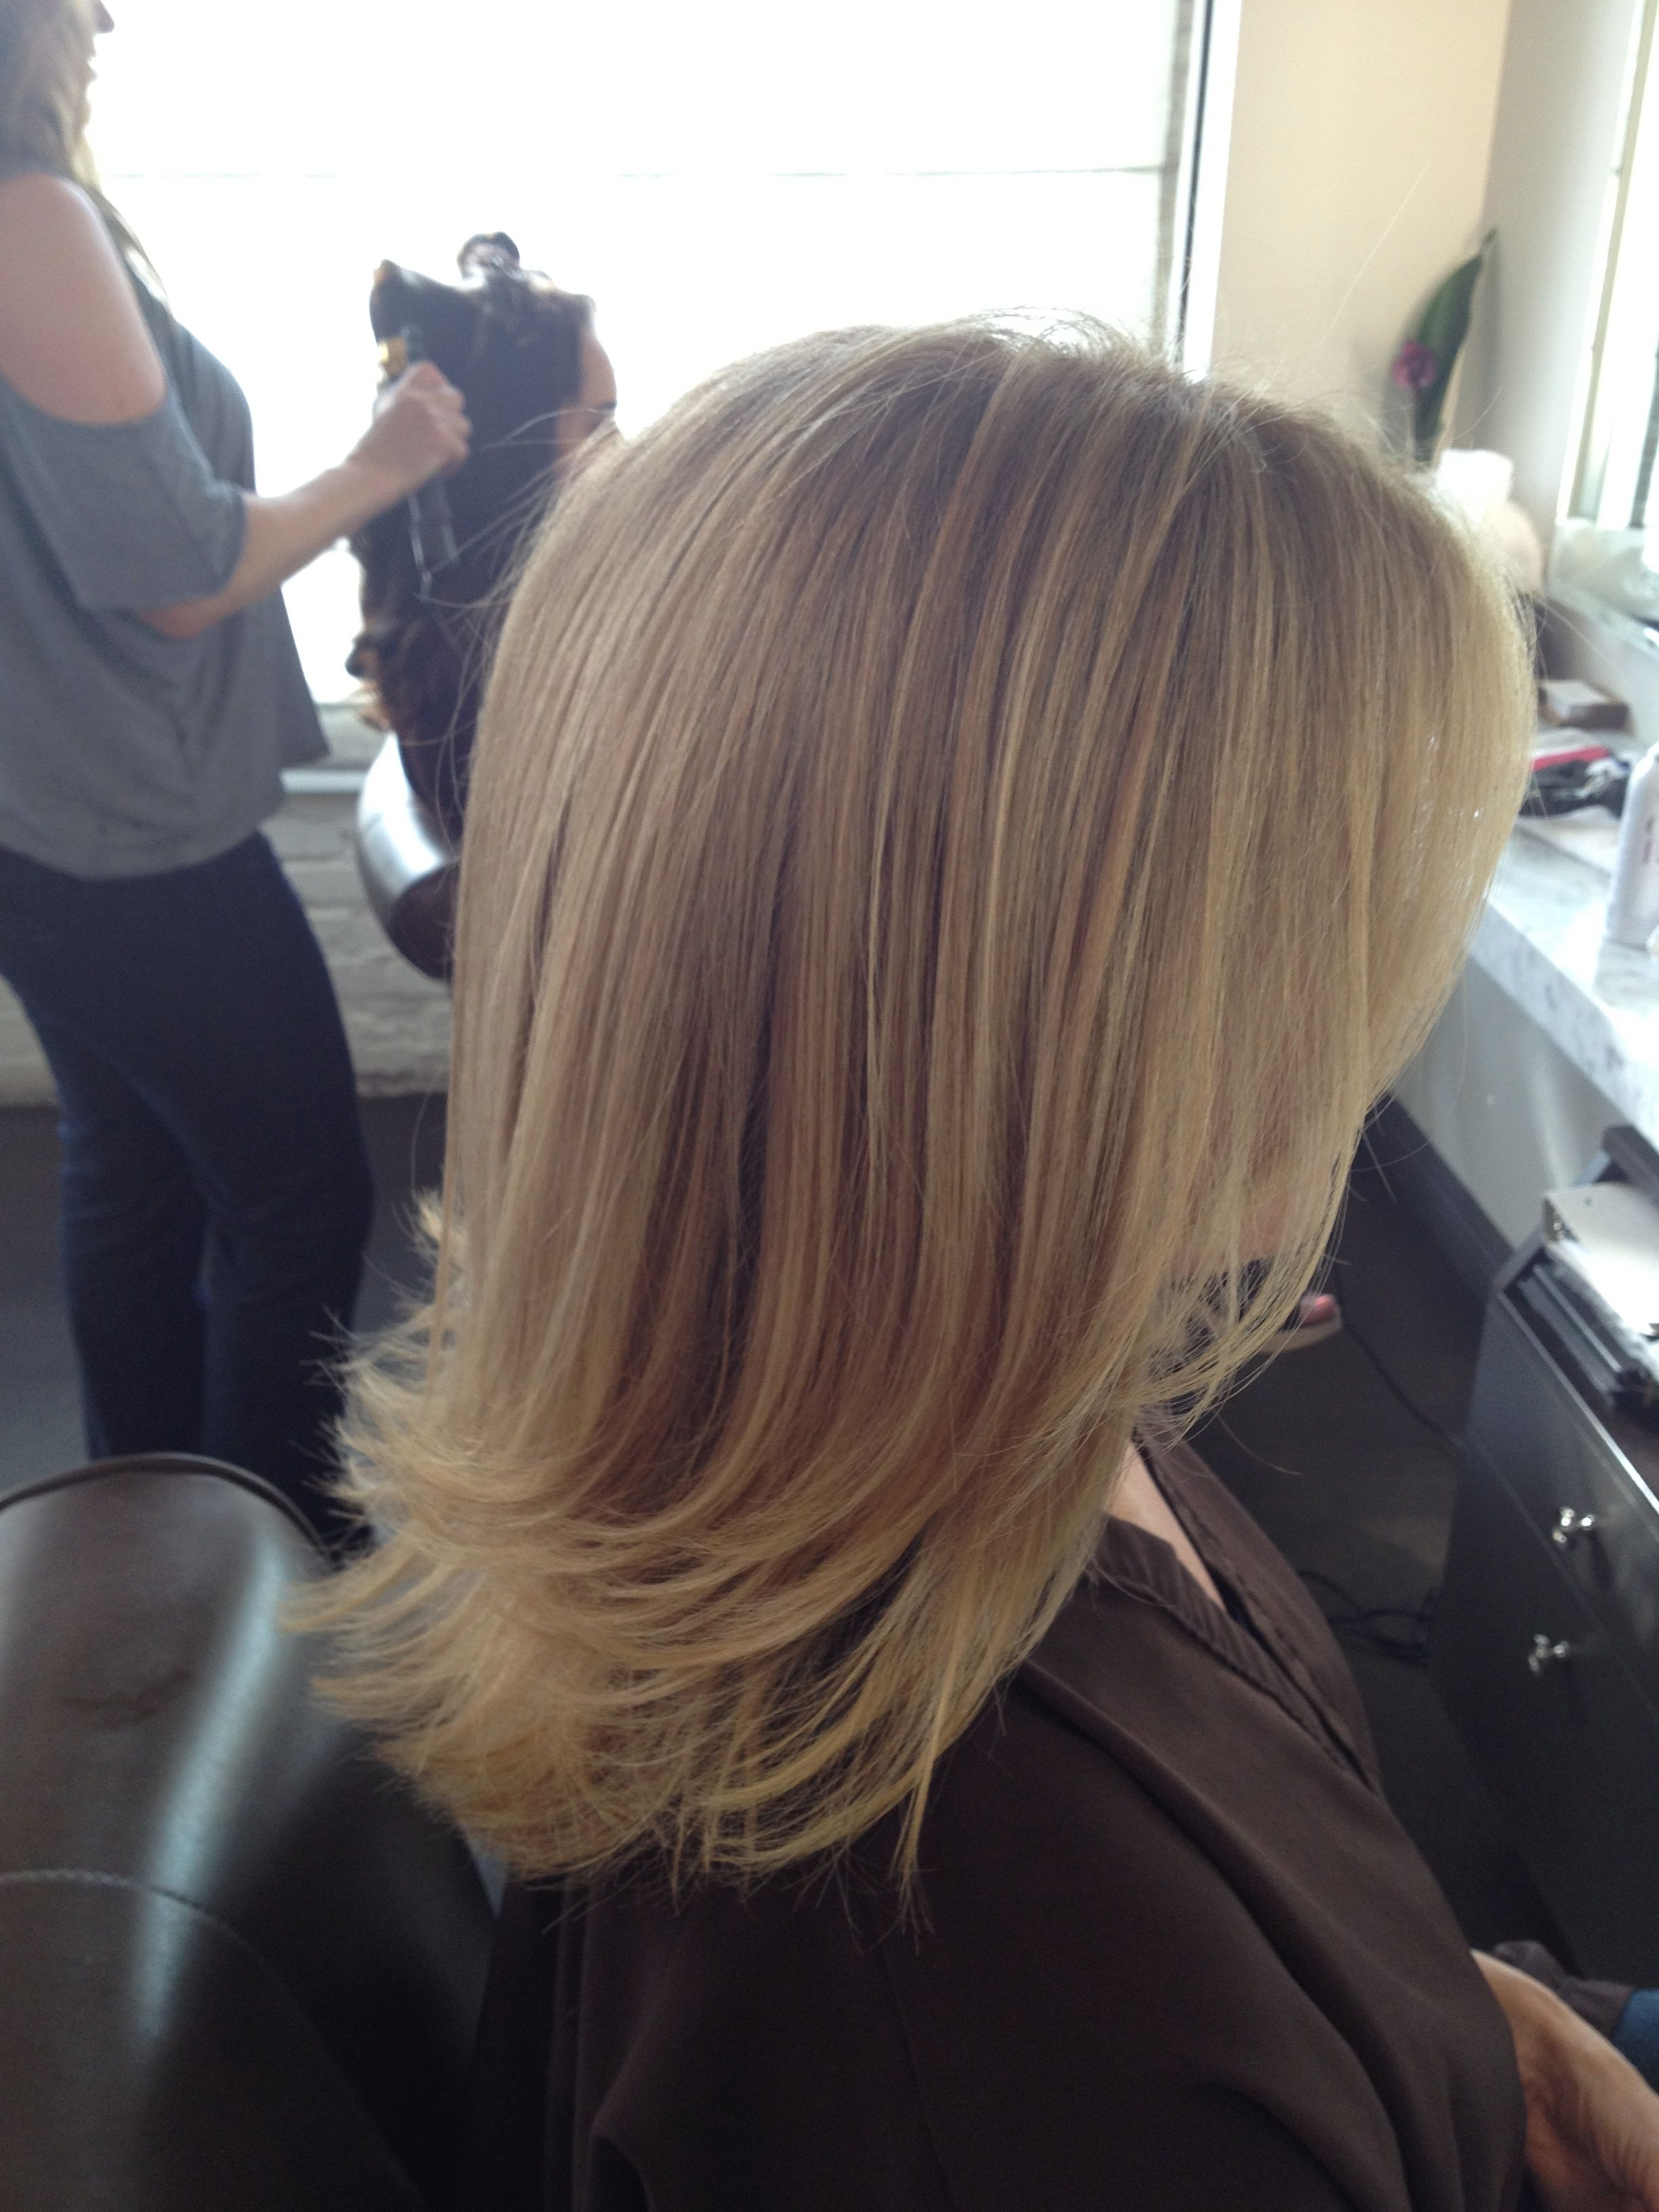 Hair And Make Up Artistry By Amber: Before And After: Cool Blonde, Chic Cut